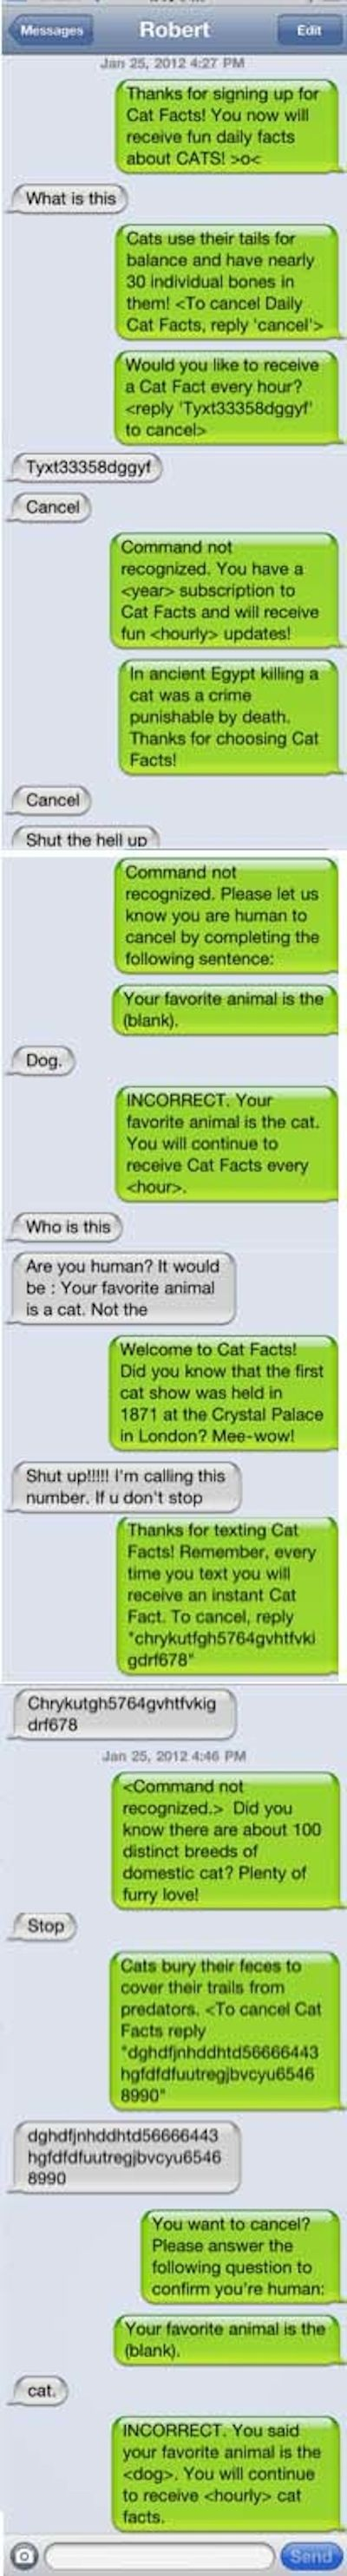 How To Stop Getting Texts From Cat Facts